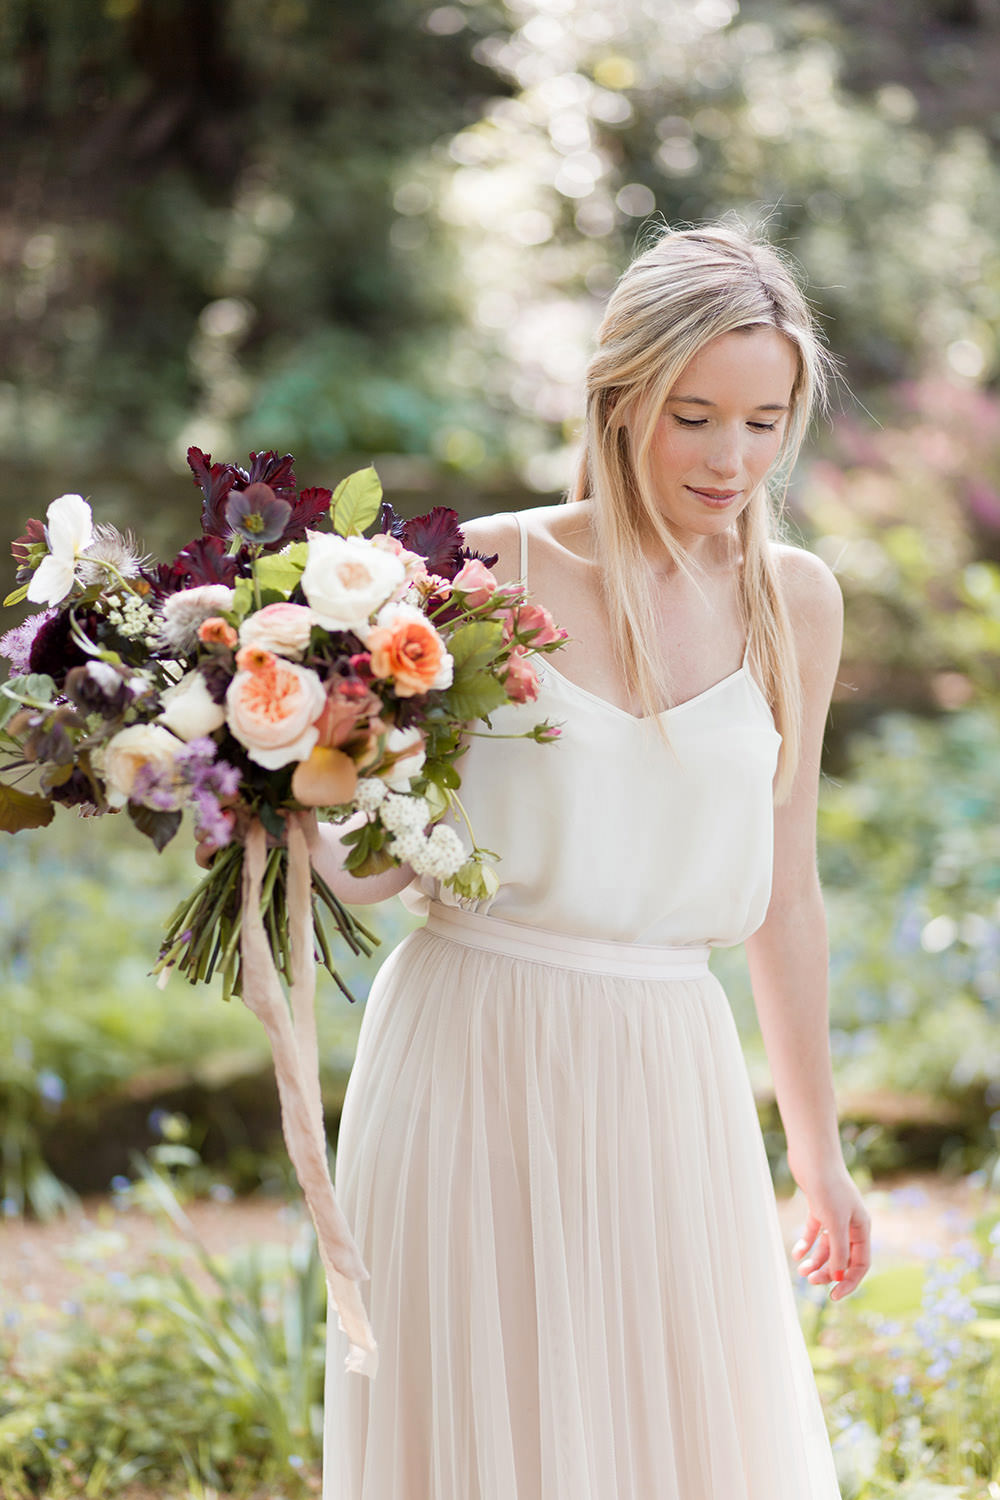 Bride Bridal Dress Gown Two Piece Skirt Top Tulle Blush Pink Light Airy Summer Wedding Ideas Charlotte Palazzo Photography